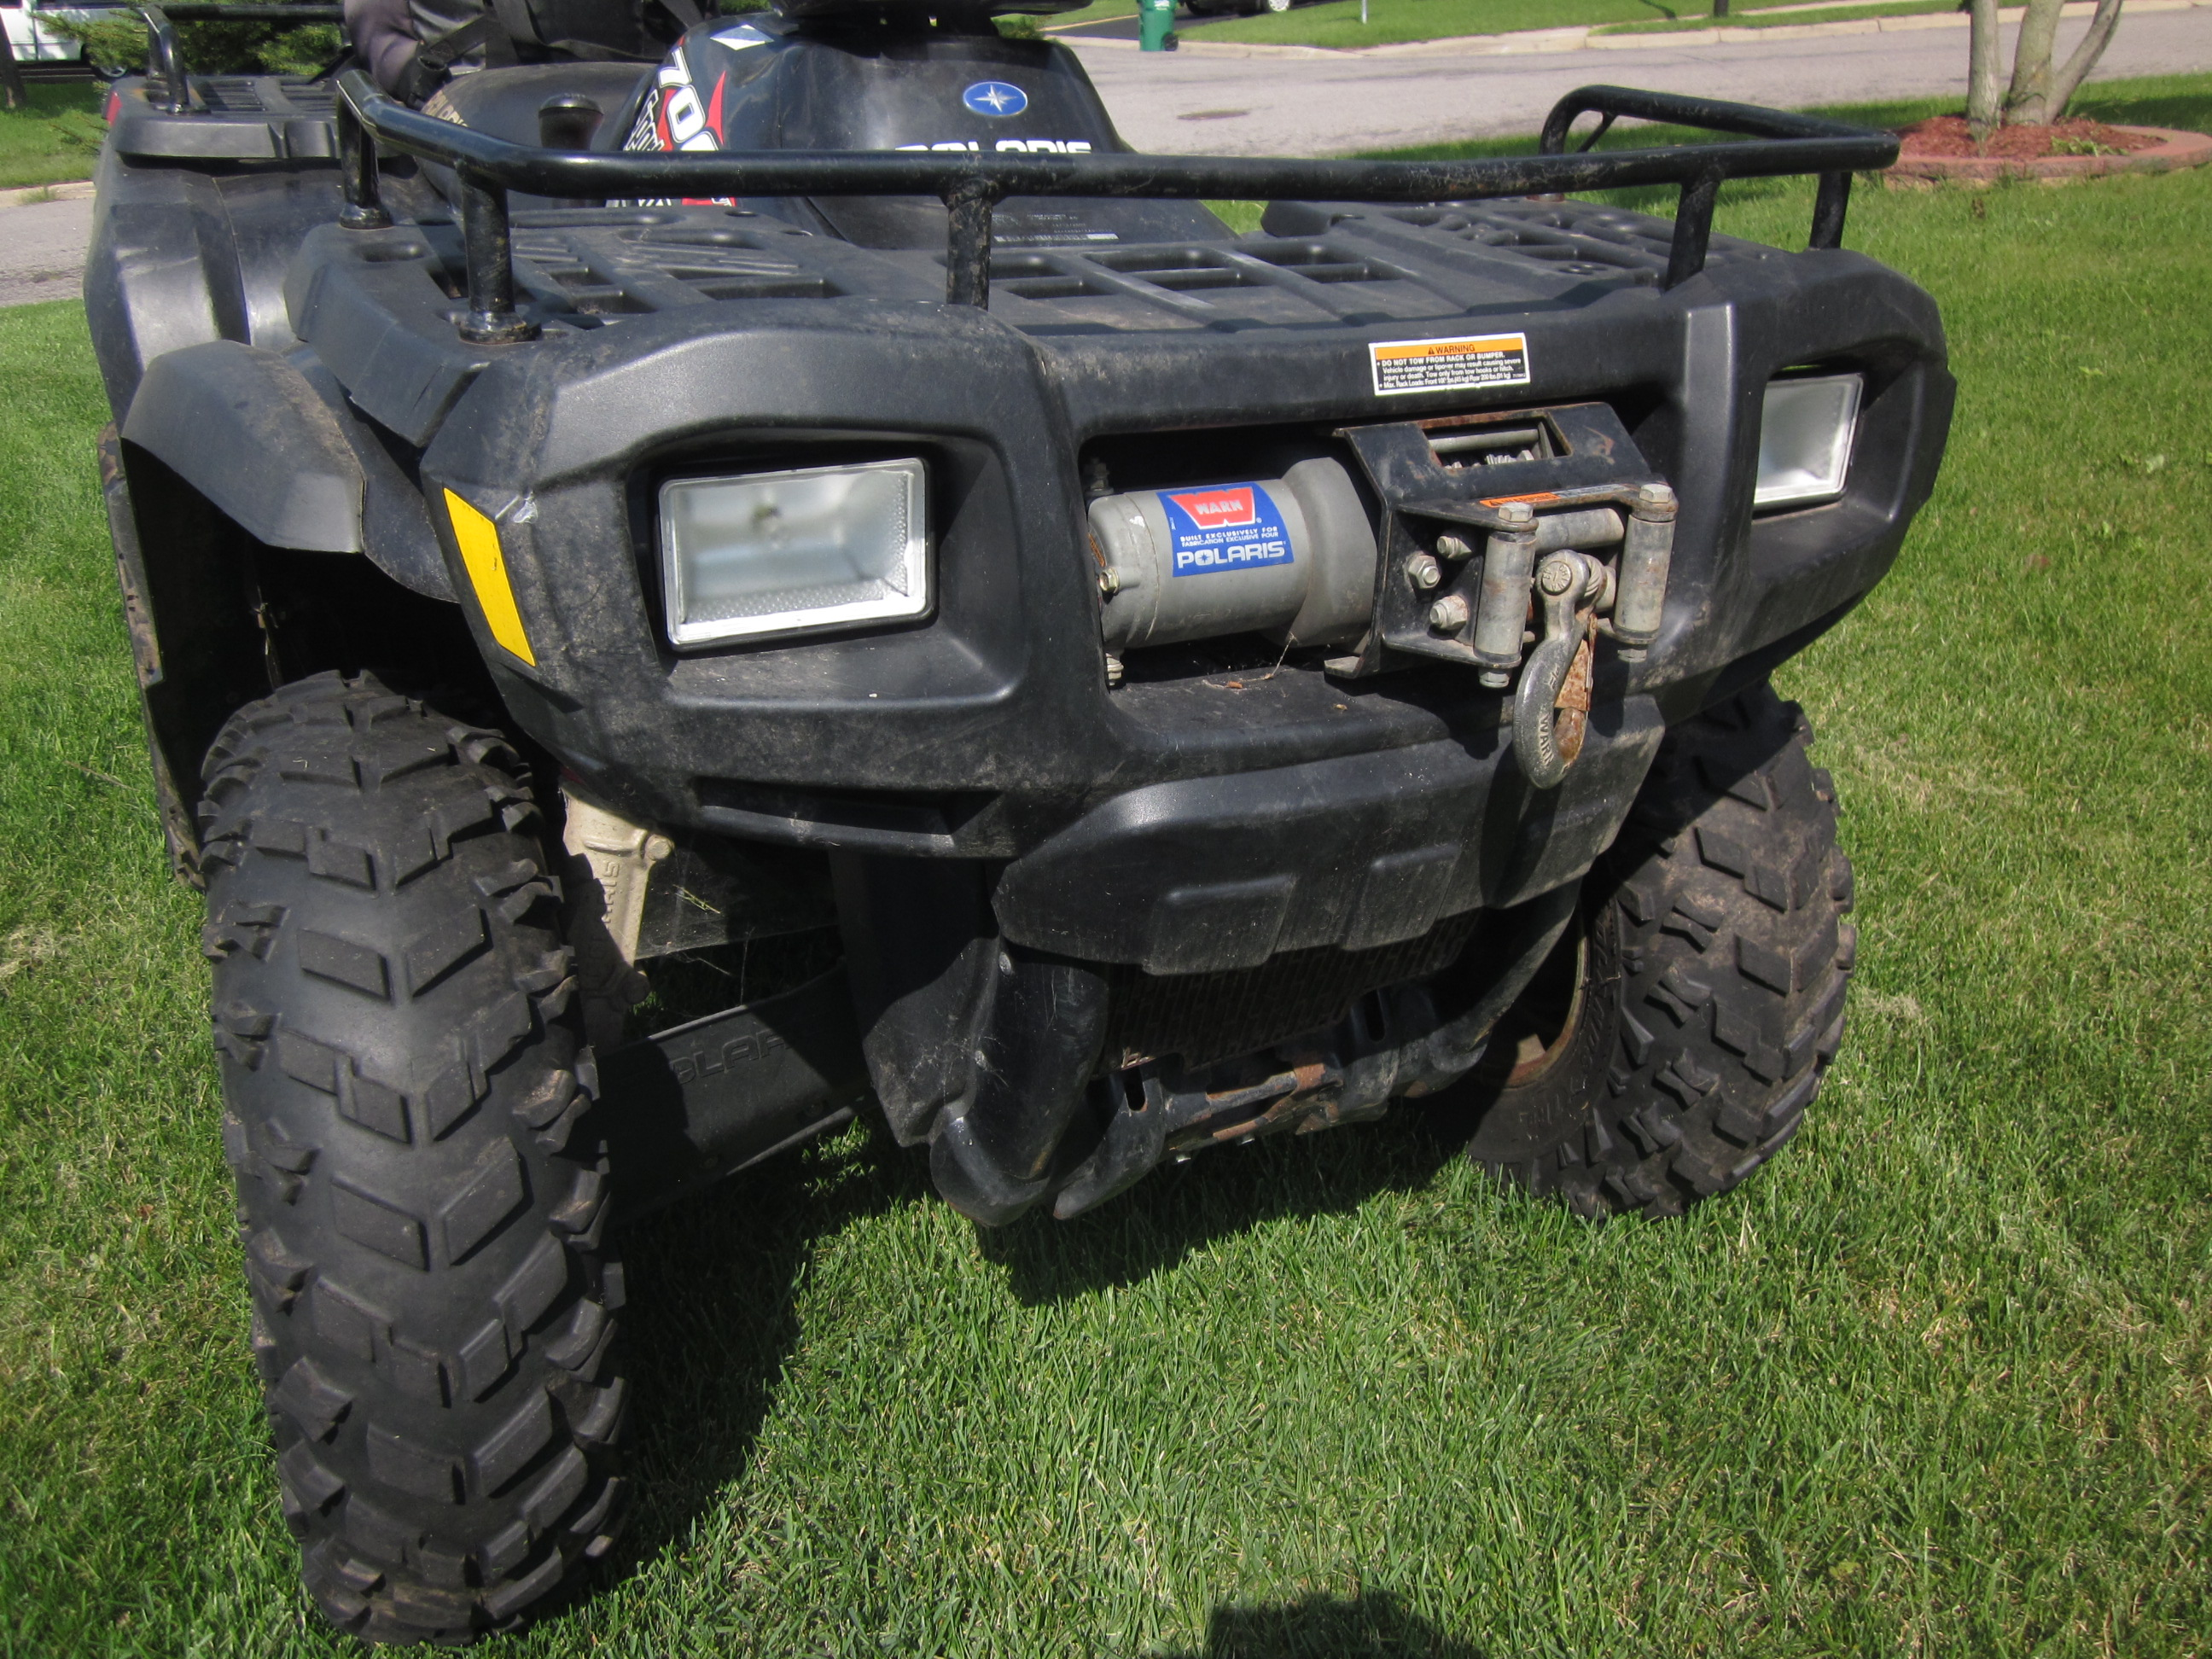 Polaris Sportsman 700 images #121208